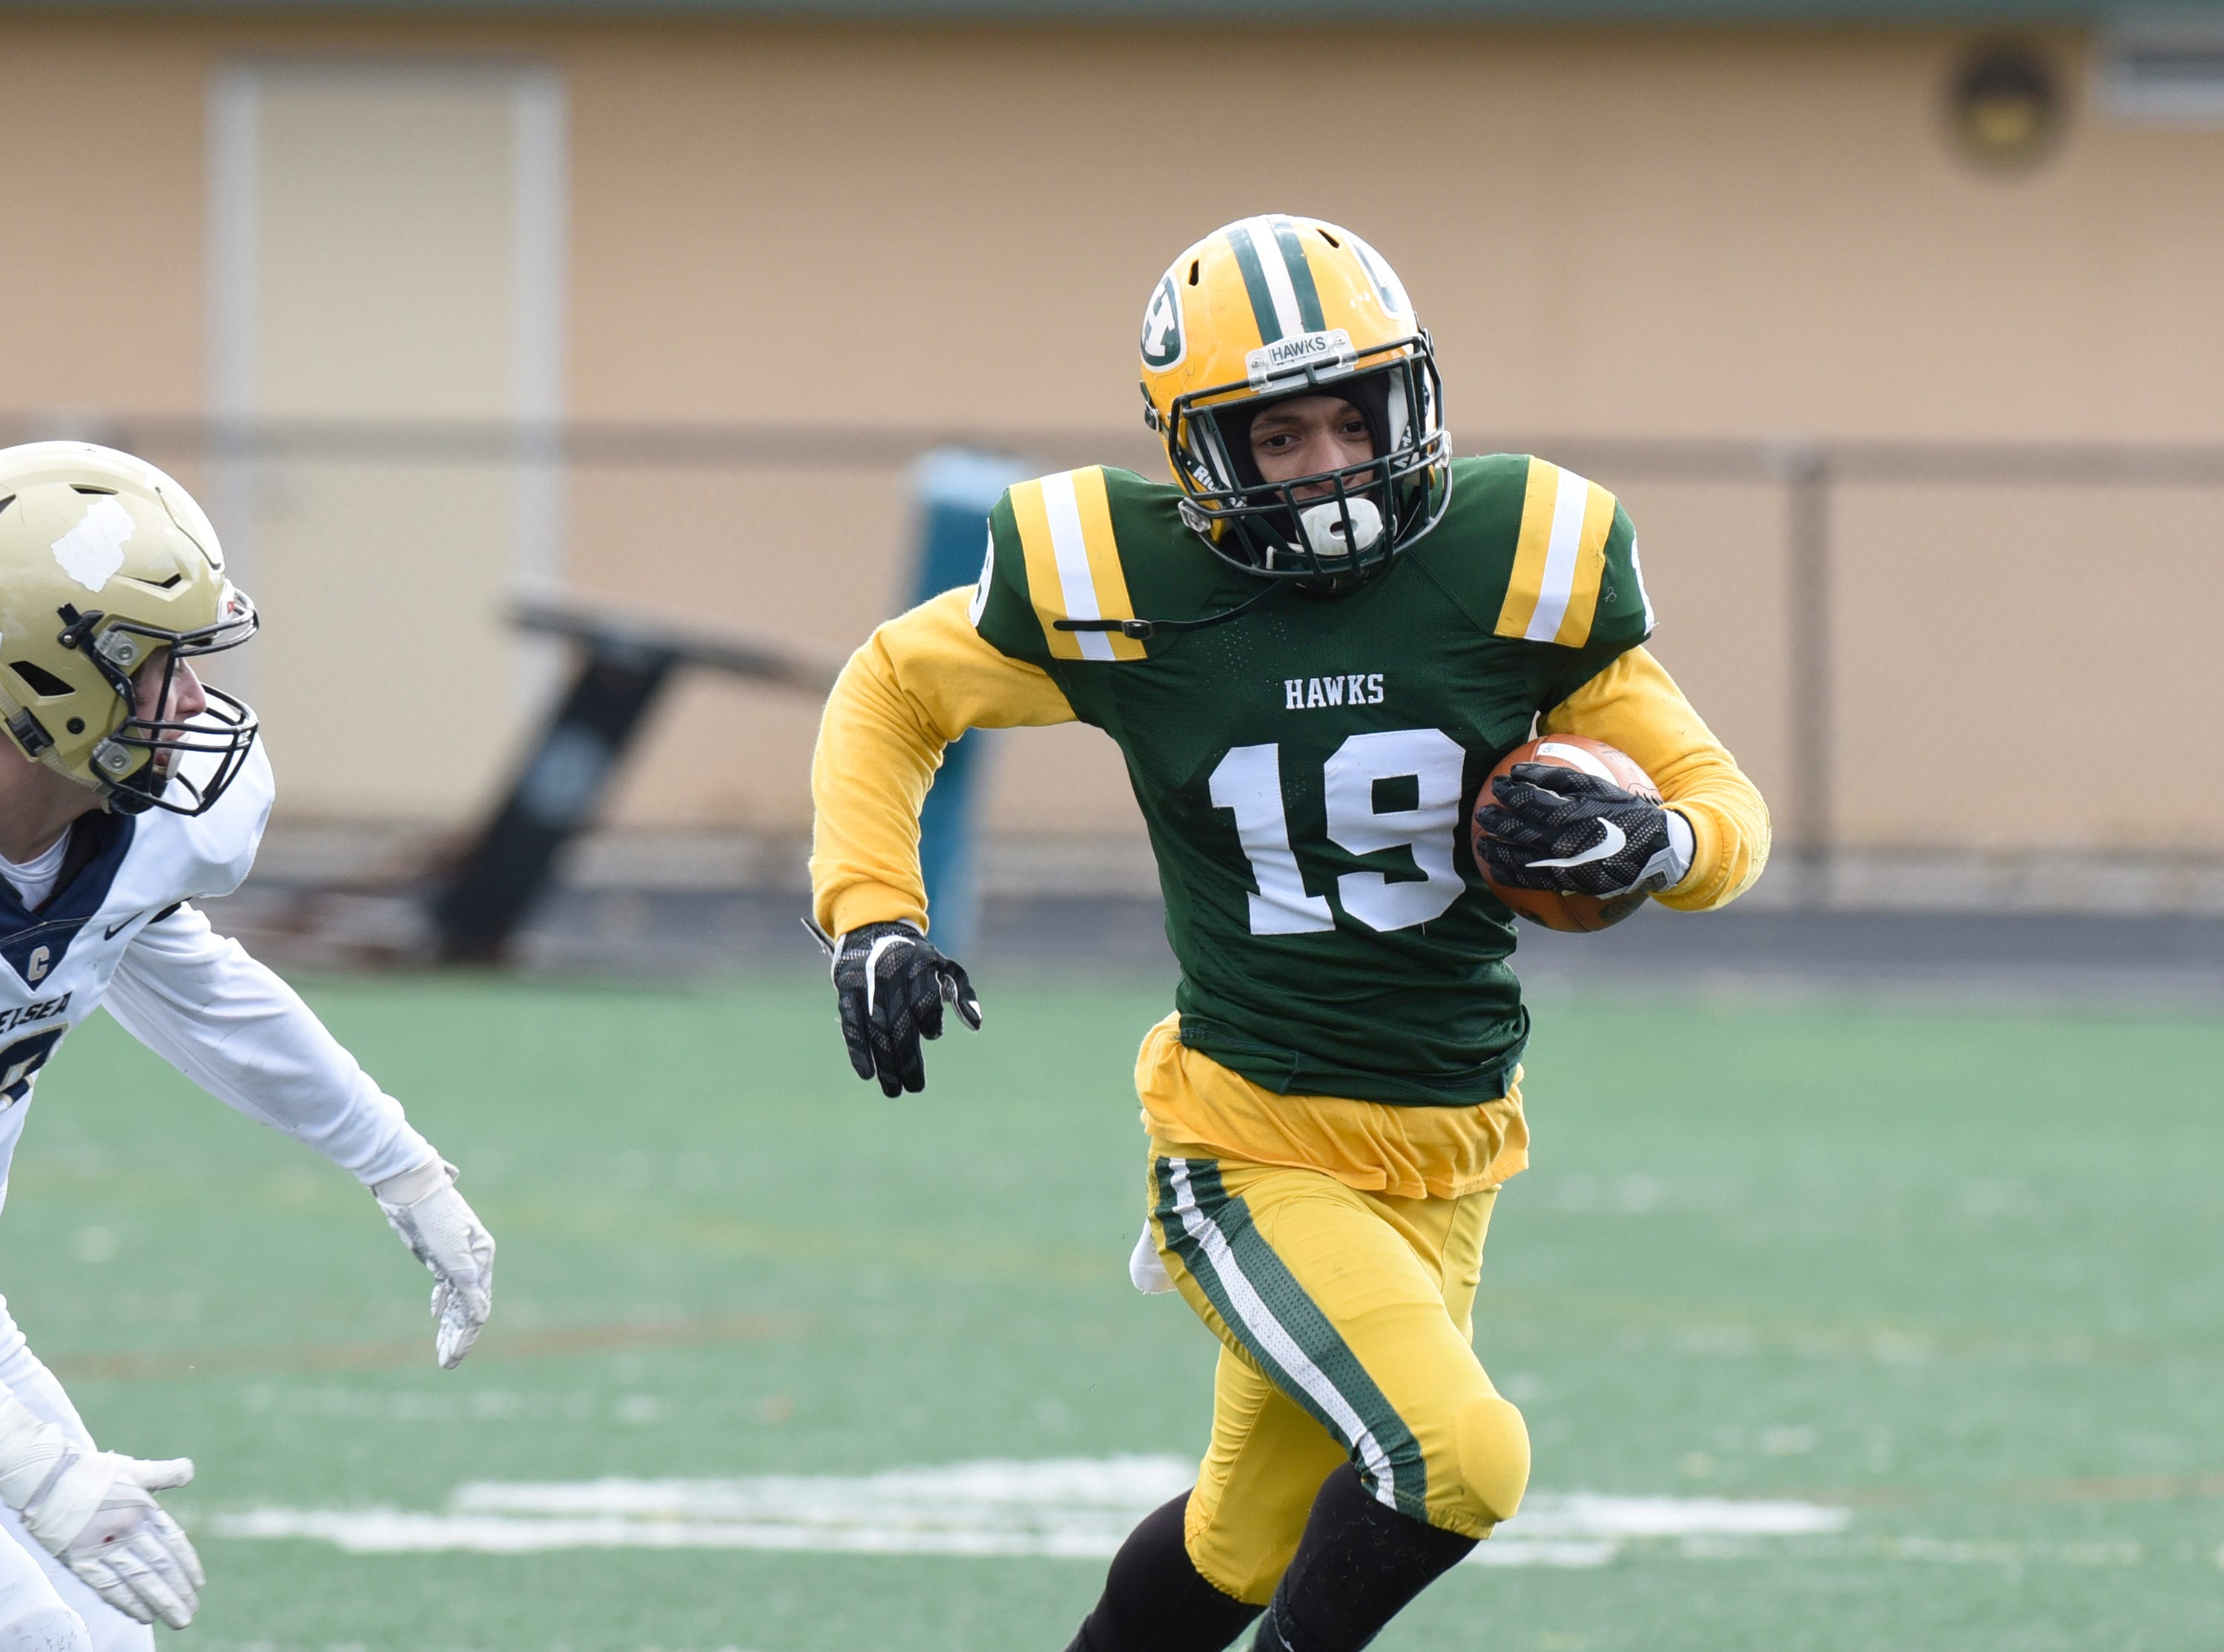 Farmington Harrison RB/DB Ben Willimas (19) during first half of the Division 4 regional final played at Buller Field Nov. 10, 2018